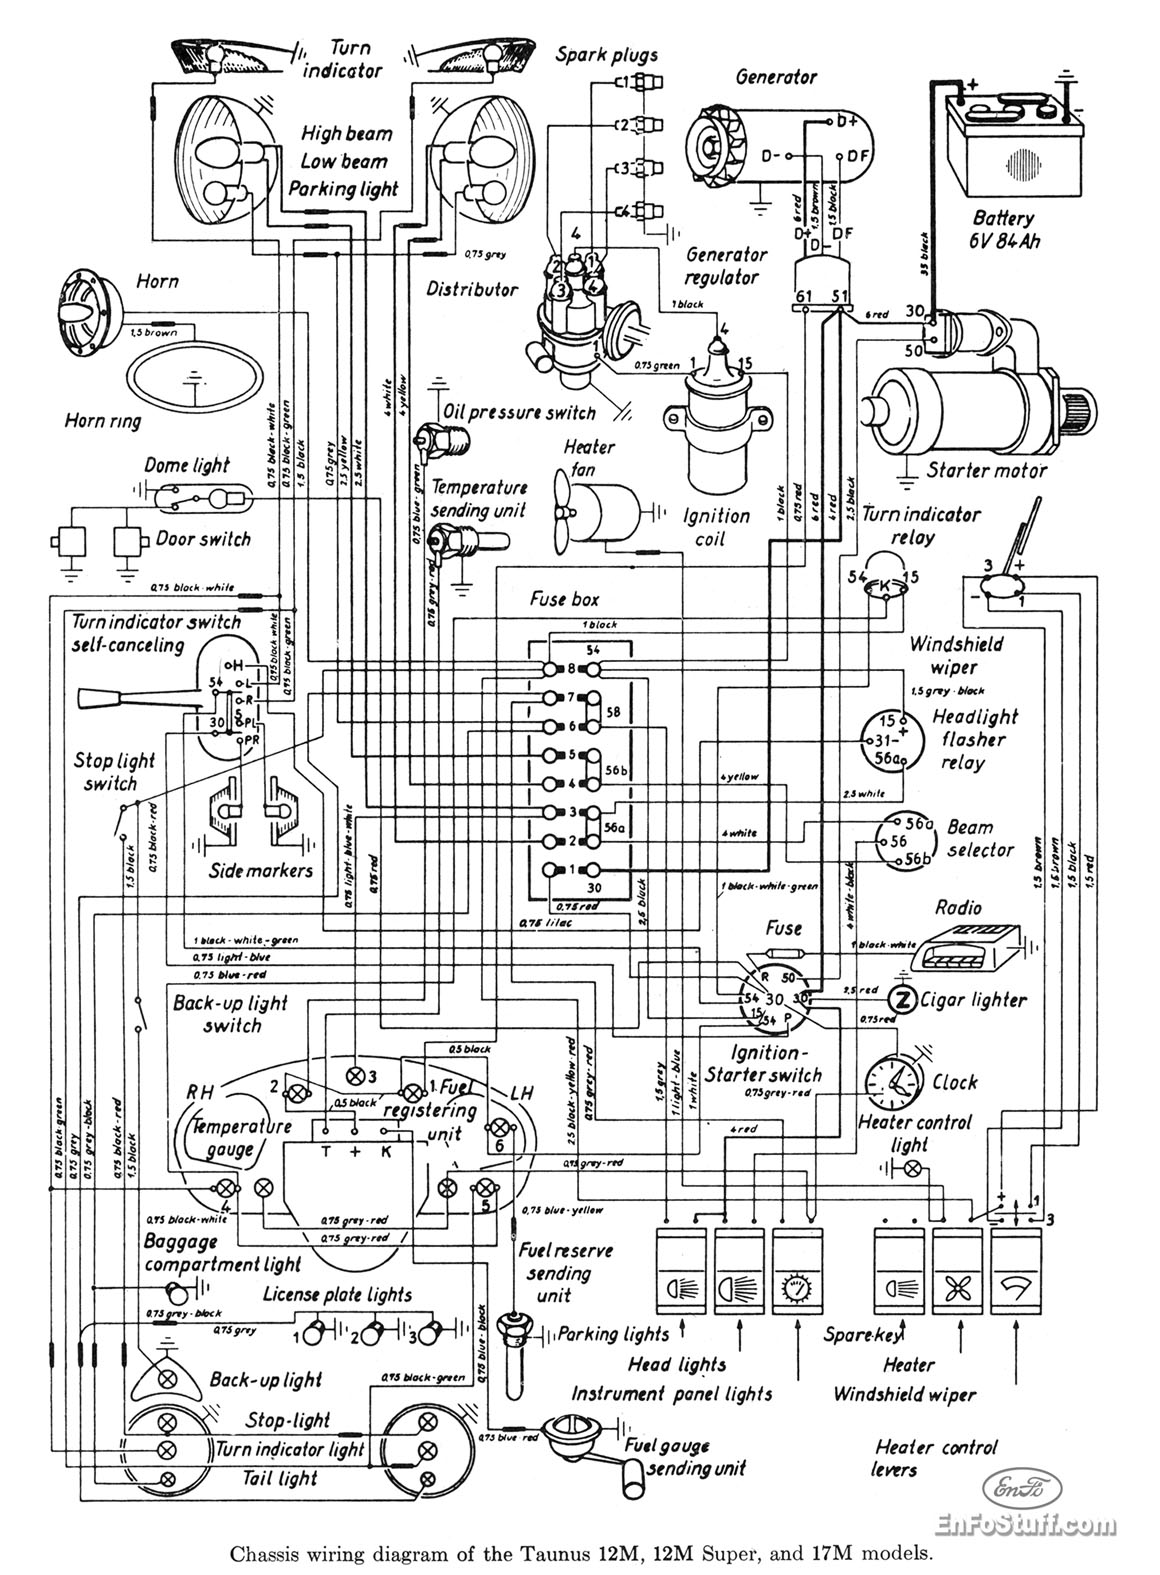 ford taunus 12m 17m wiring diagram wiring diagram for taunus 12m, 12m super, and 17m models 1955 ford wiring diagram at alyssarenee.co